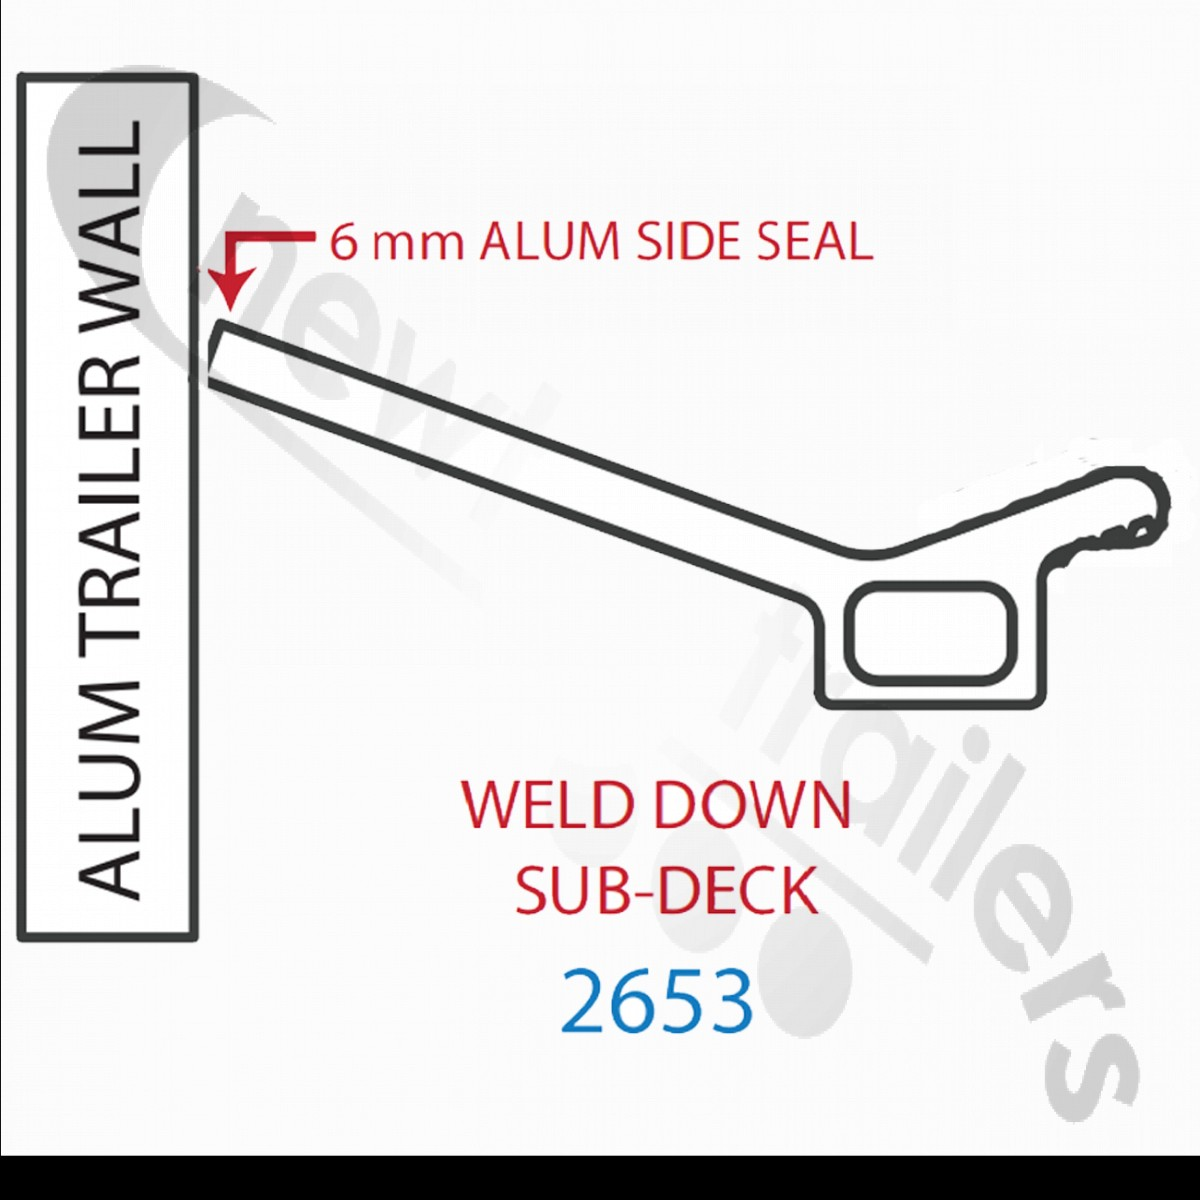 2653 Keith Walking Floor V18 Aluminium Sub Deck Side Seal 2653